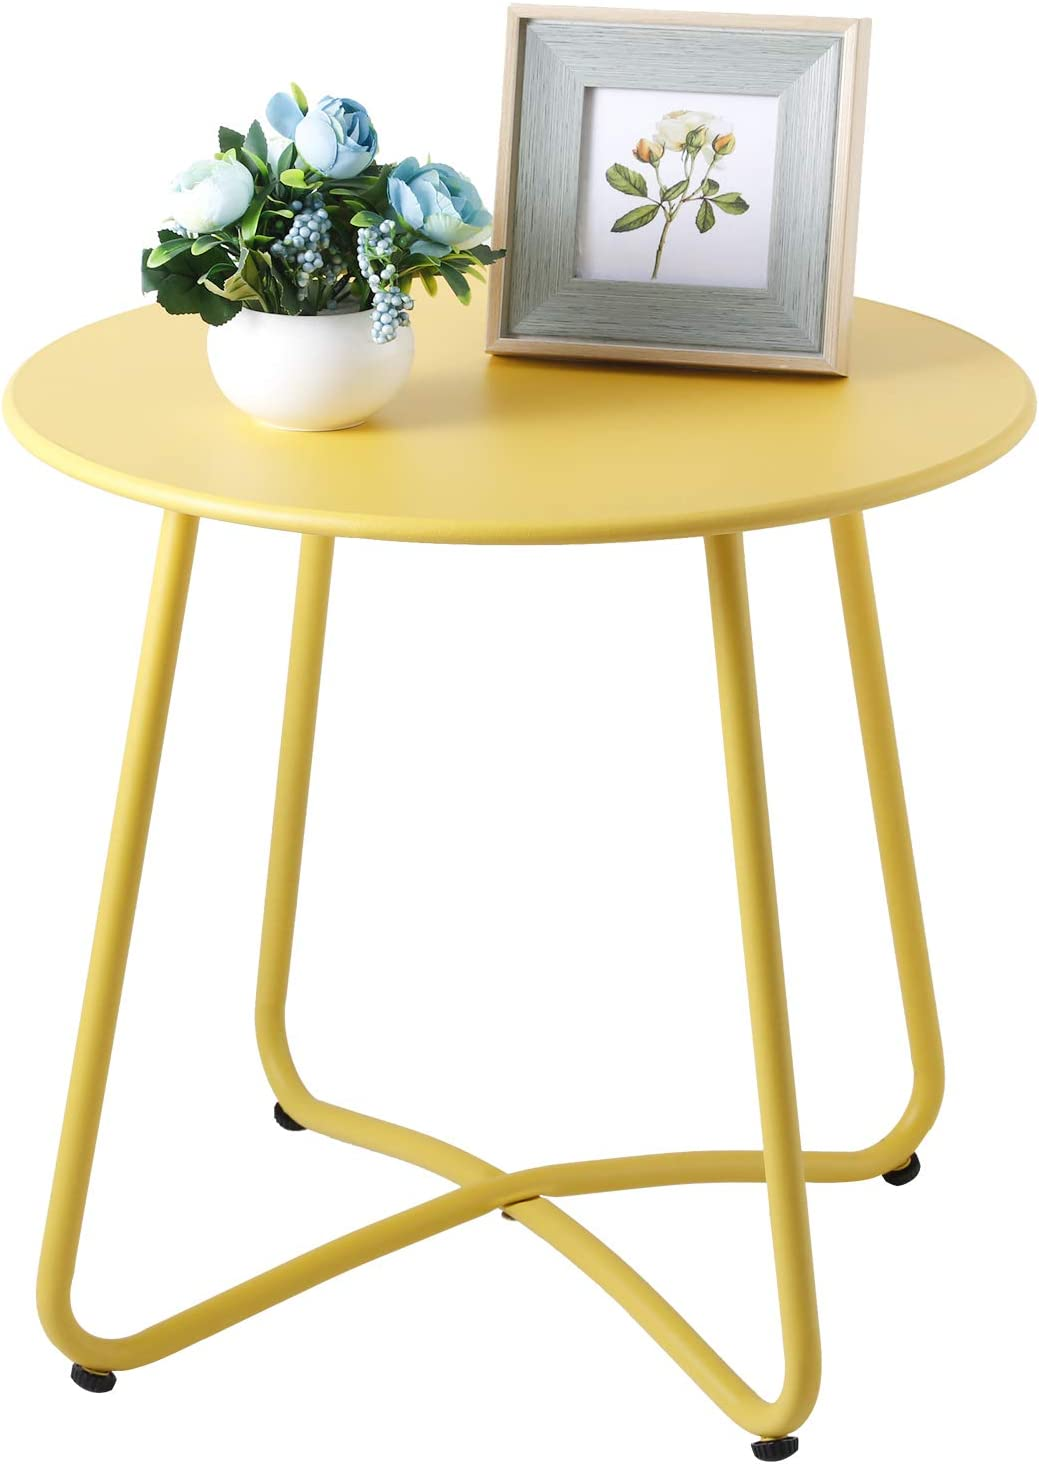 CaiFang Outdoor Metal Side Table, Waterproof End Table Small Round Patio Side Table Coffee Table for Porch, Yard, Balcony, Garden (Yellow)